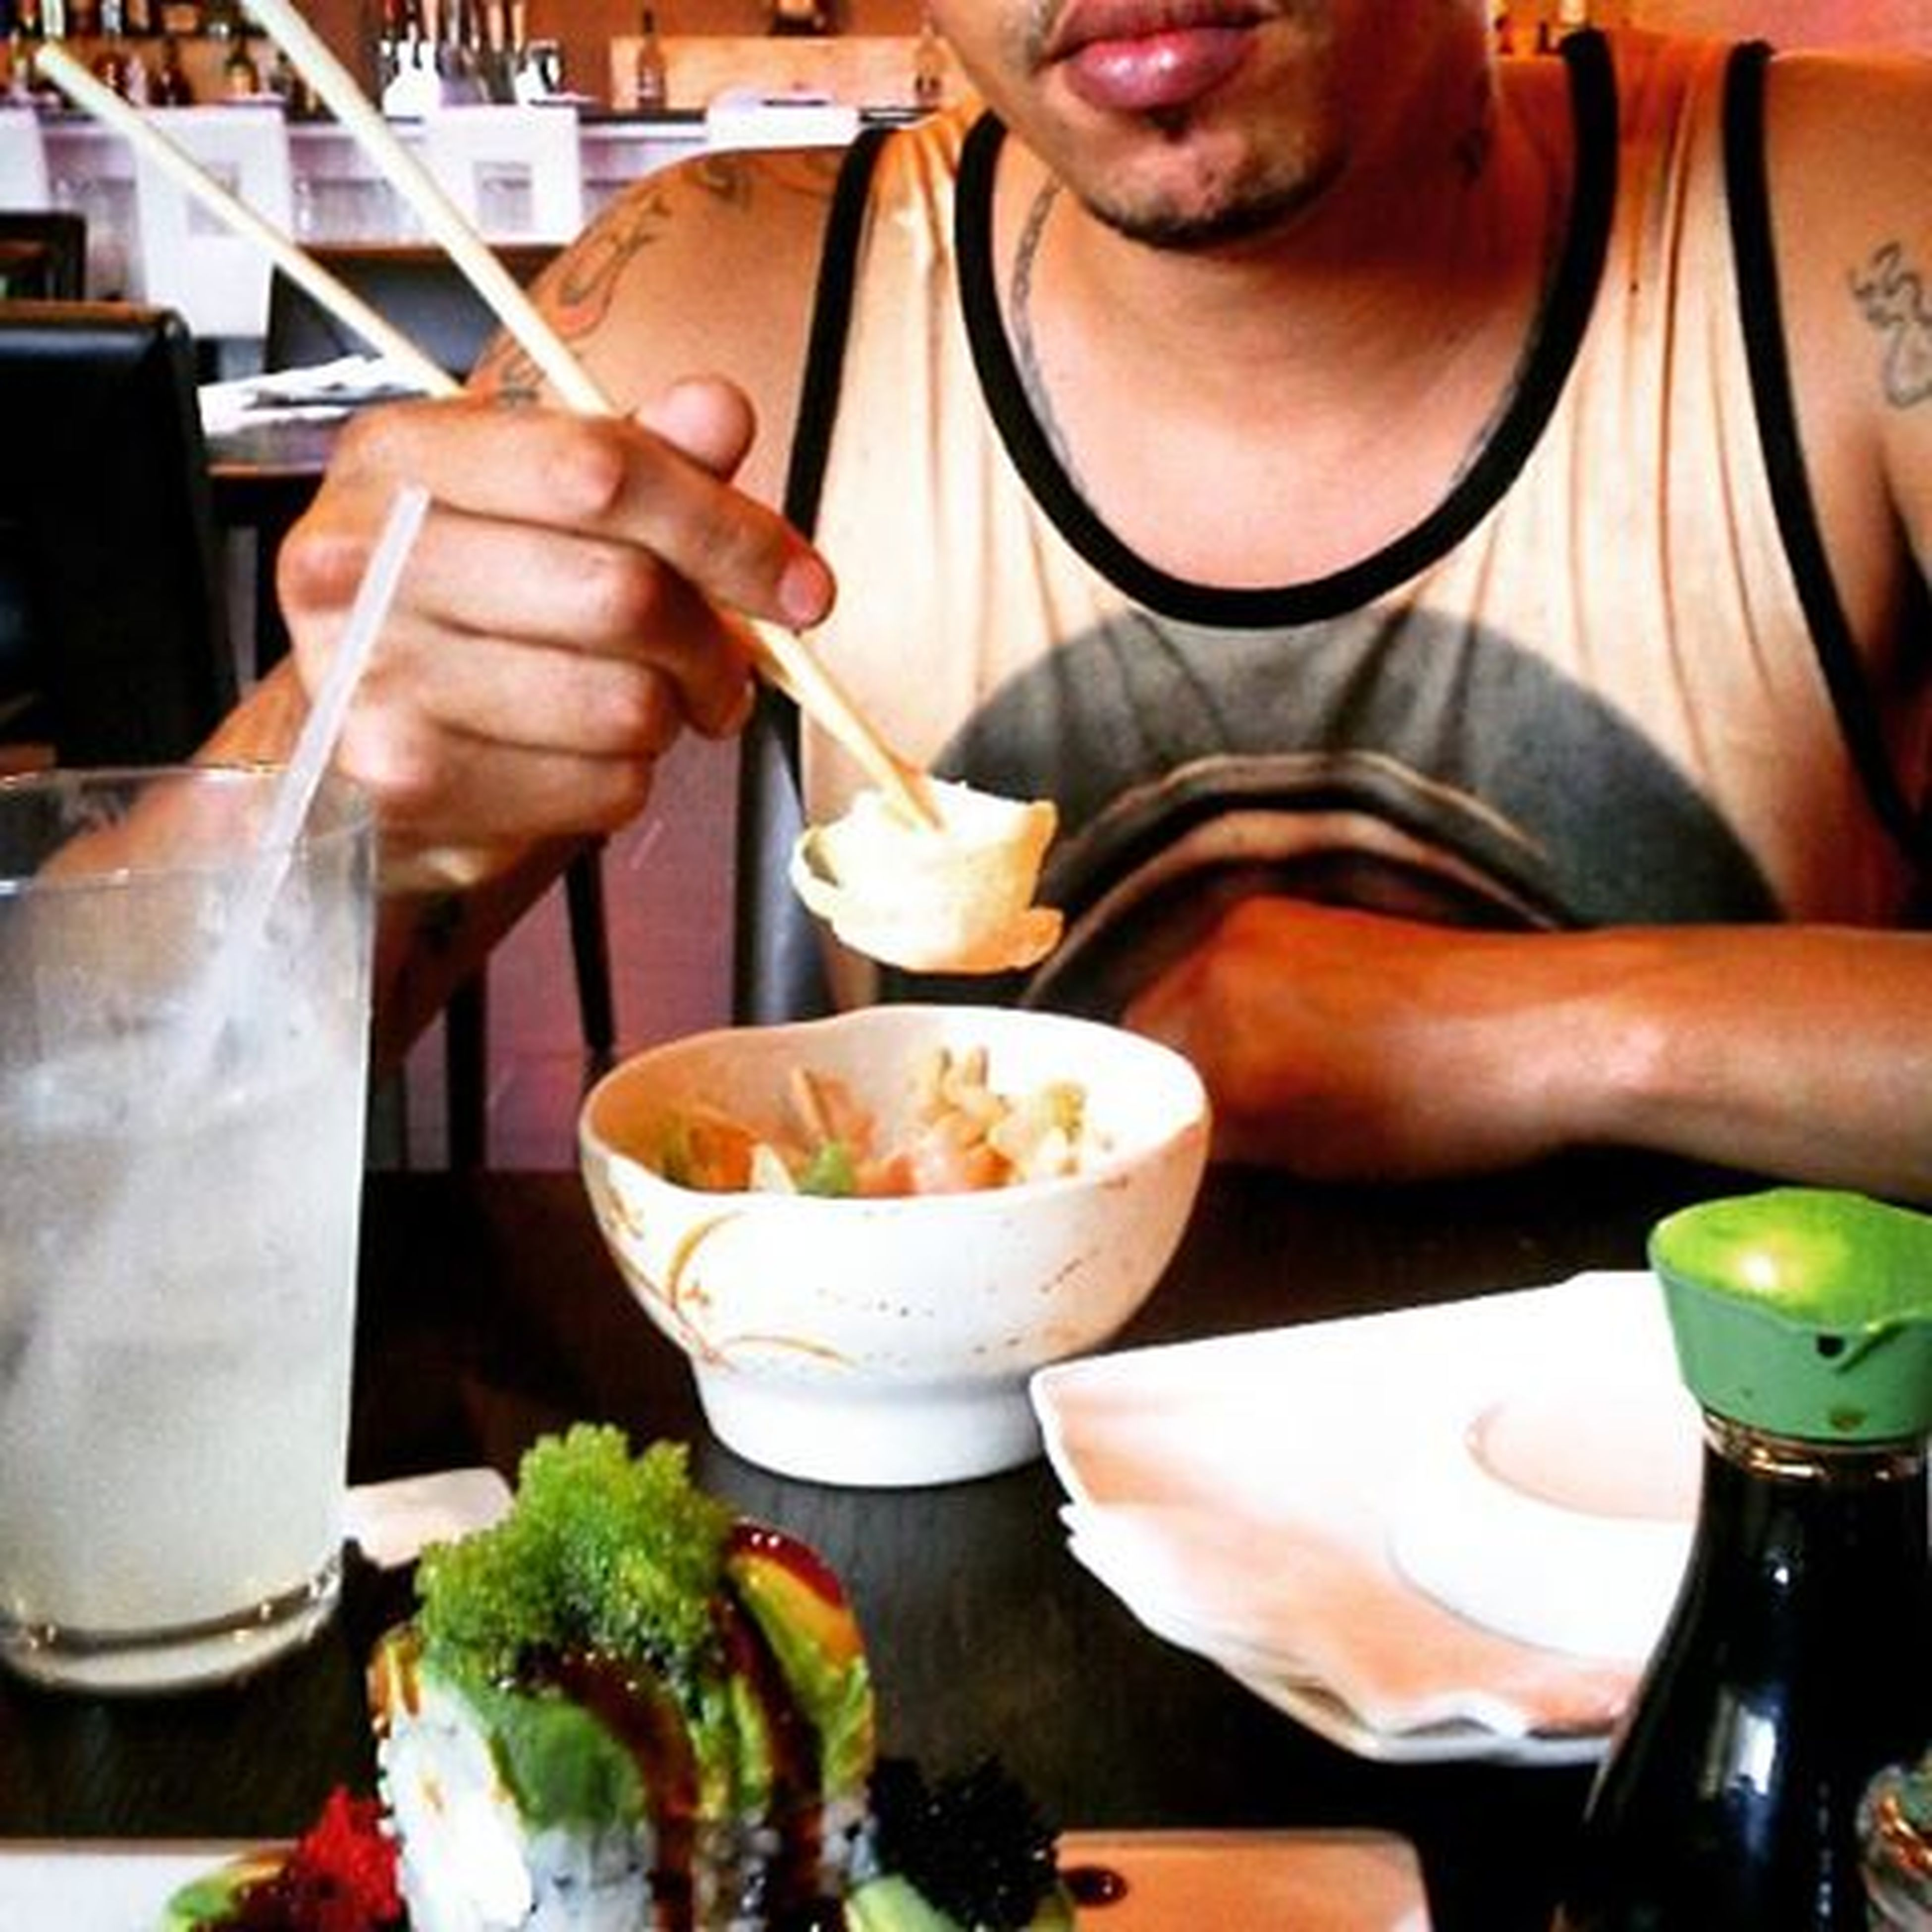 food and drink, food, freshness, indoors, drink, holding, lifestyles, table, refreshment, ready-to-eat, person, restaurant, healthy eating, plate, leisure activity, indulgence, drinking glass, midsection